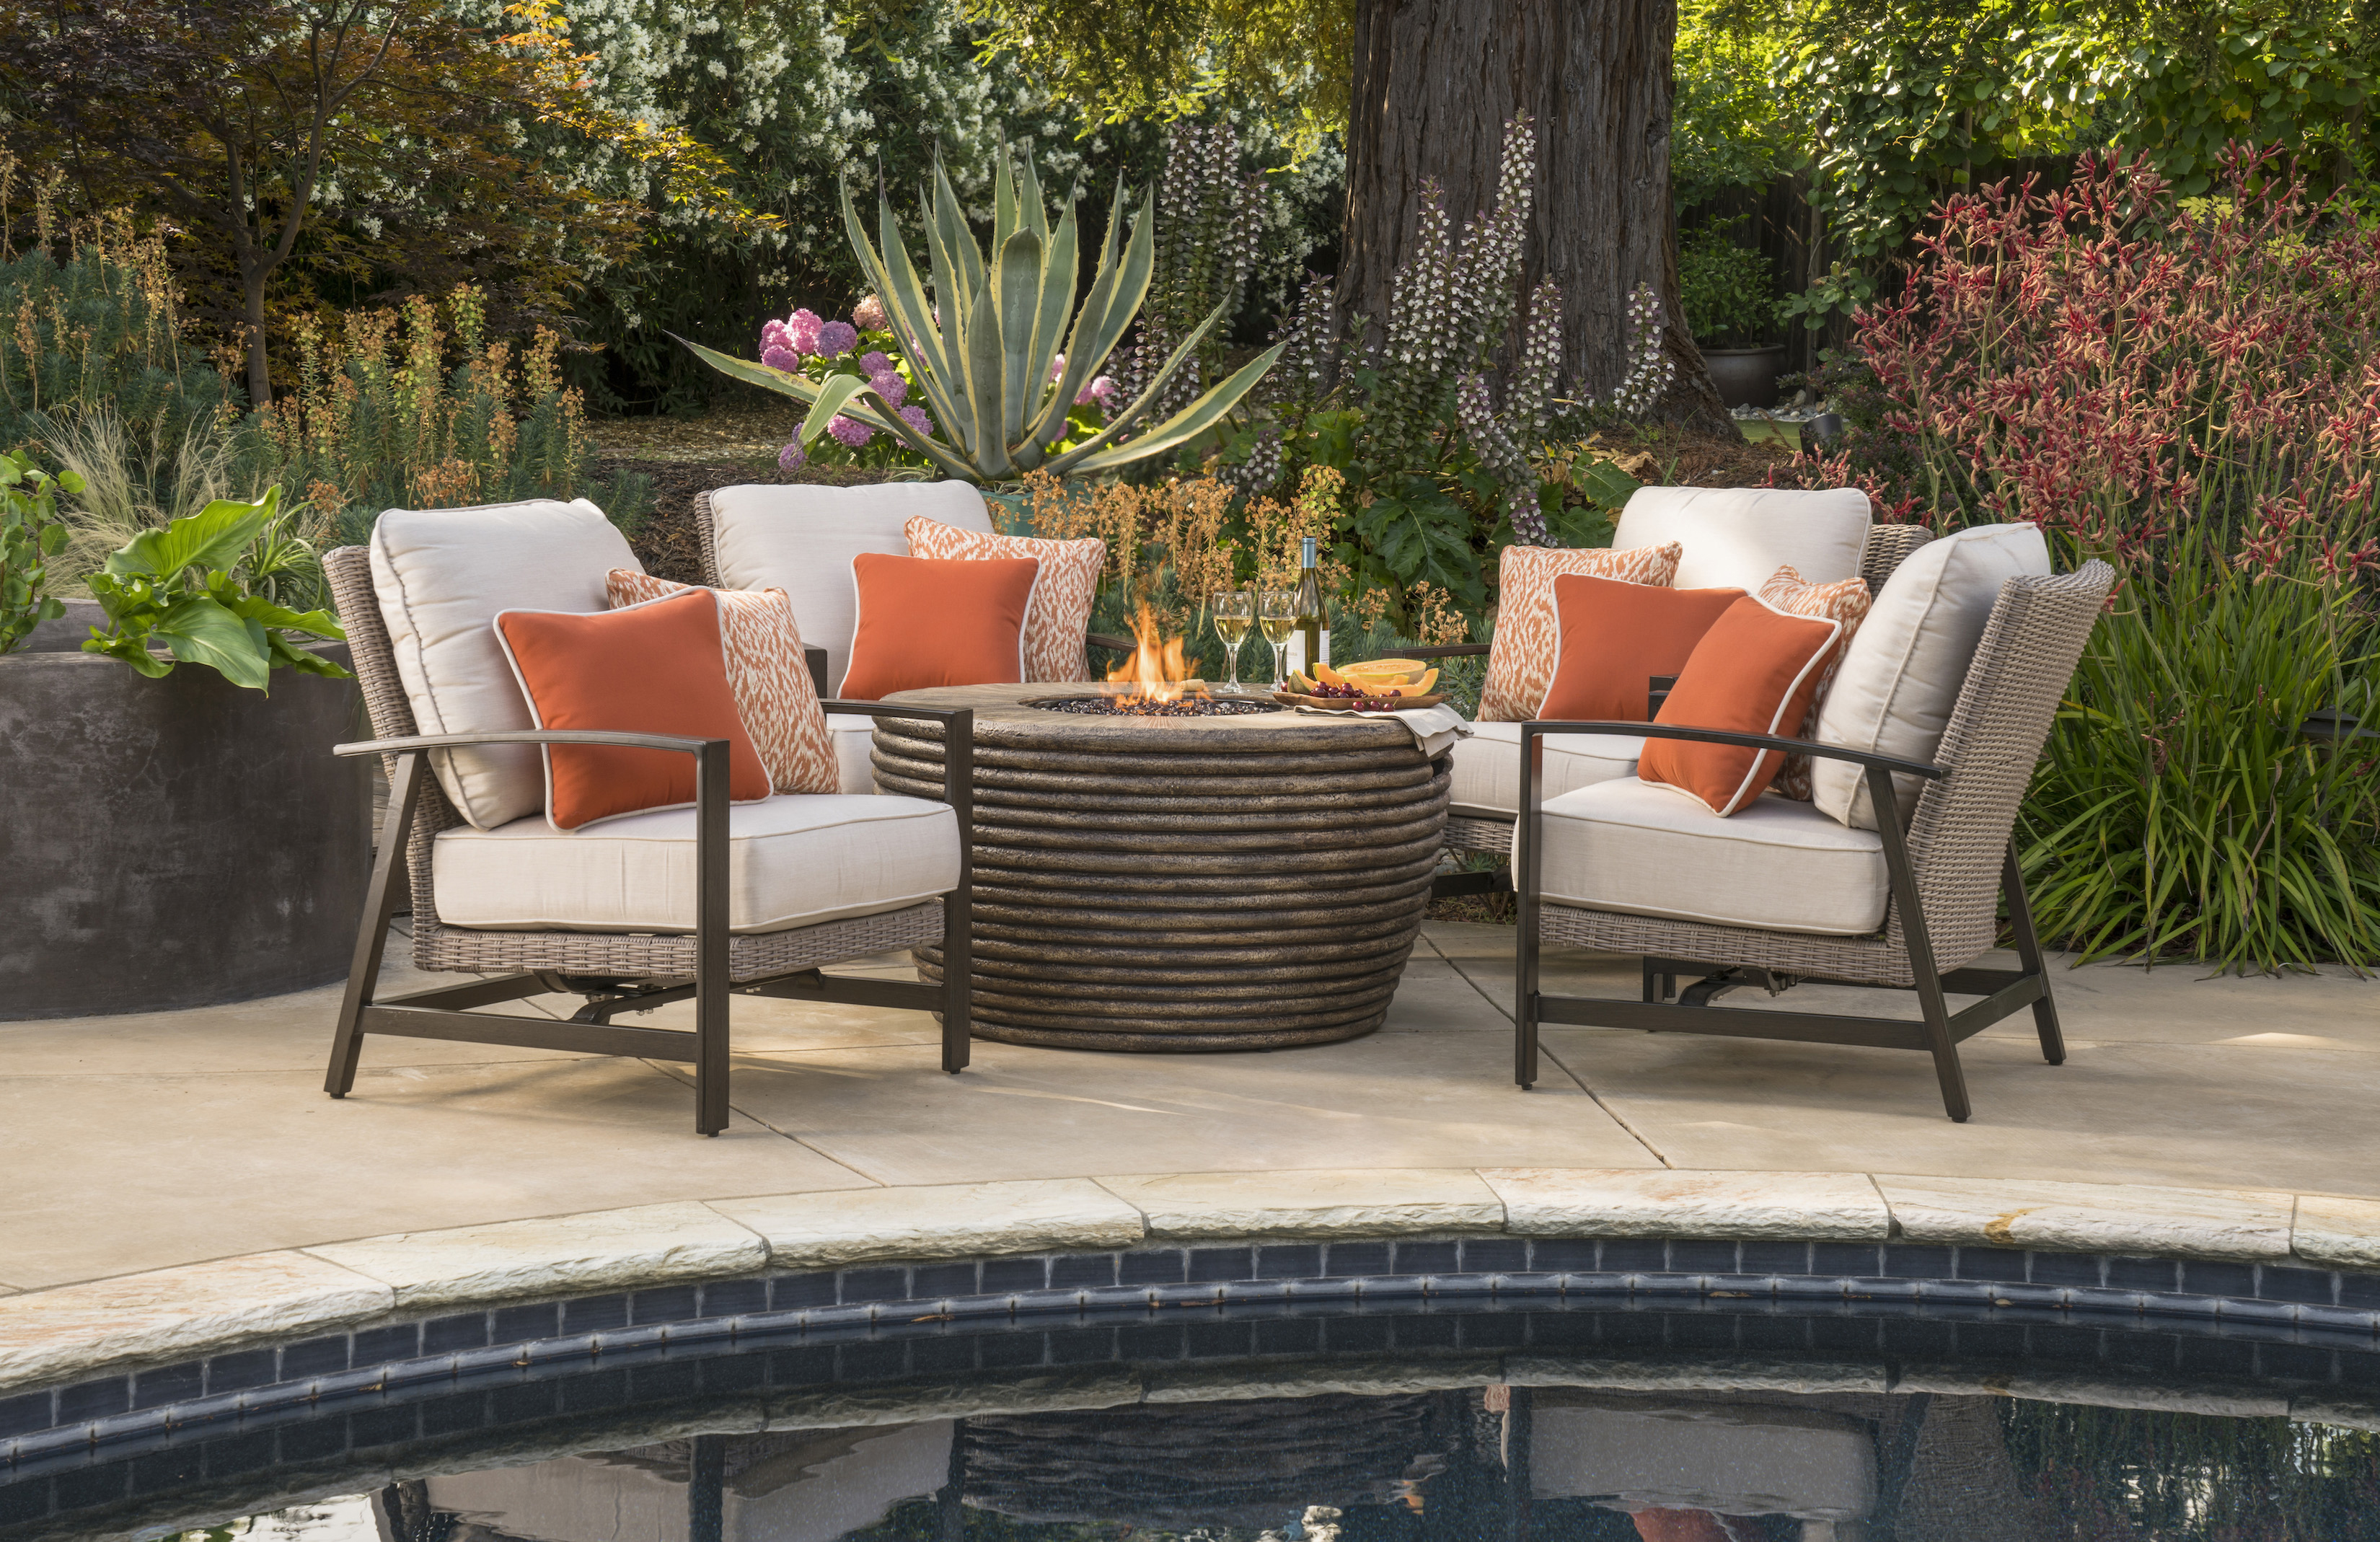 Spring ahead with gray furniture, purple flowers and other outdoor trends